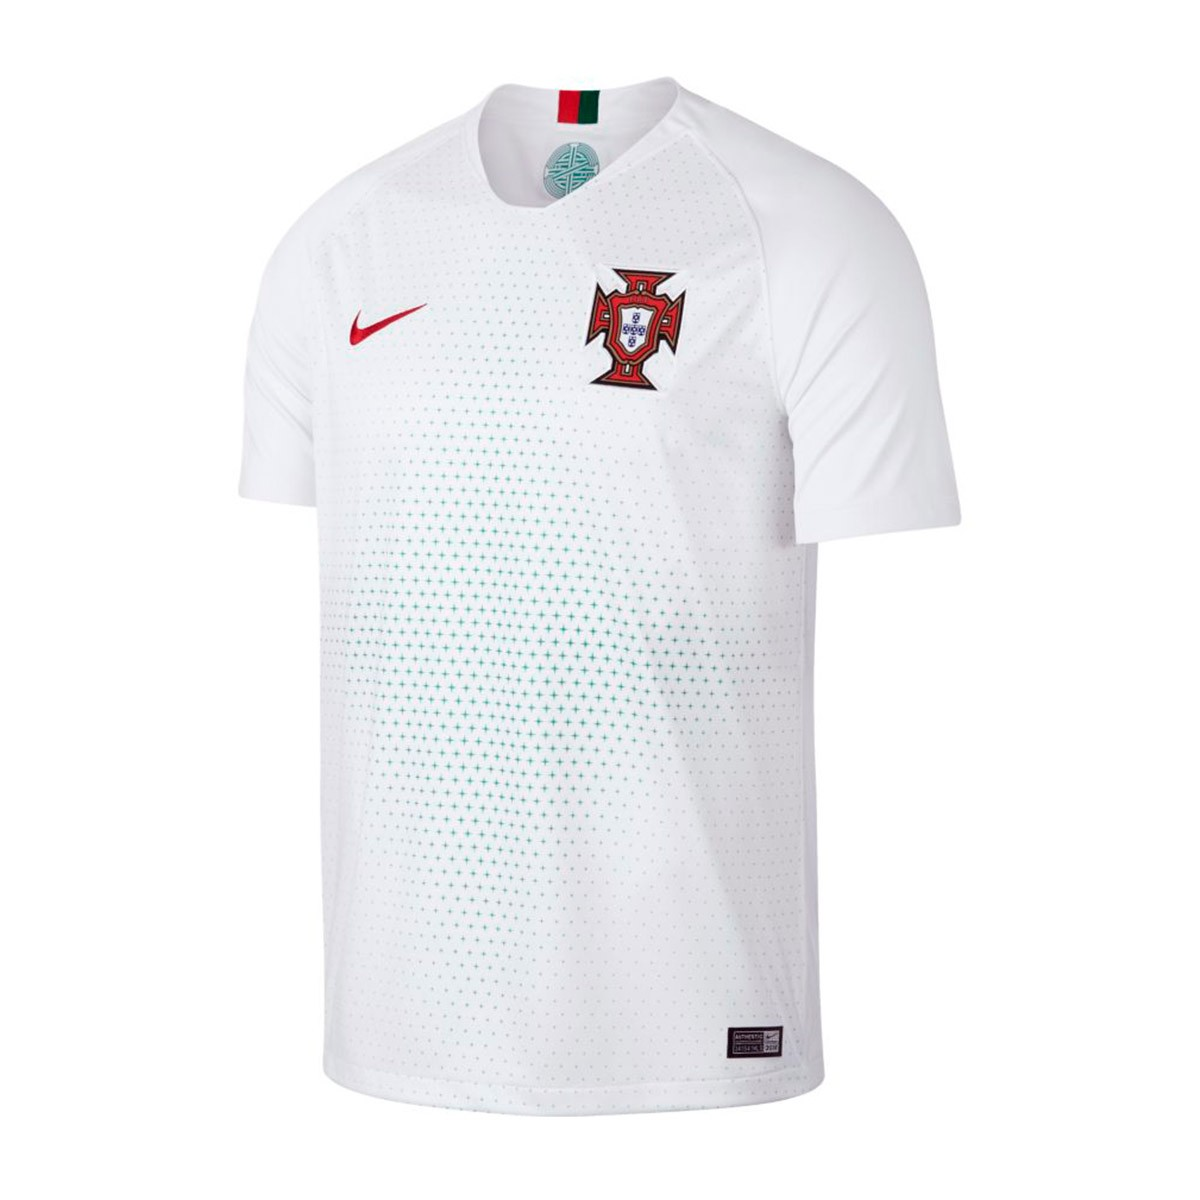 Camiseta Nike Portugal Breathe Stadium Segunda Equipación 2018-2019  White-Gym red - Soloporteros es ahora Fútbol Emotion 22b3d8f462a68